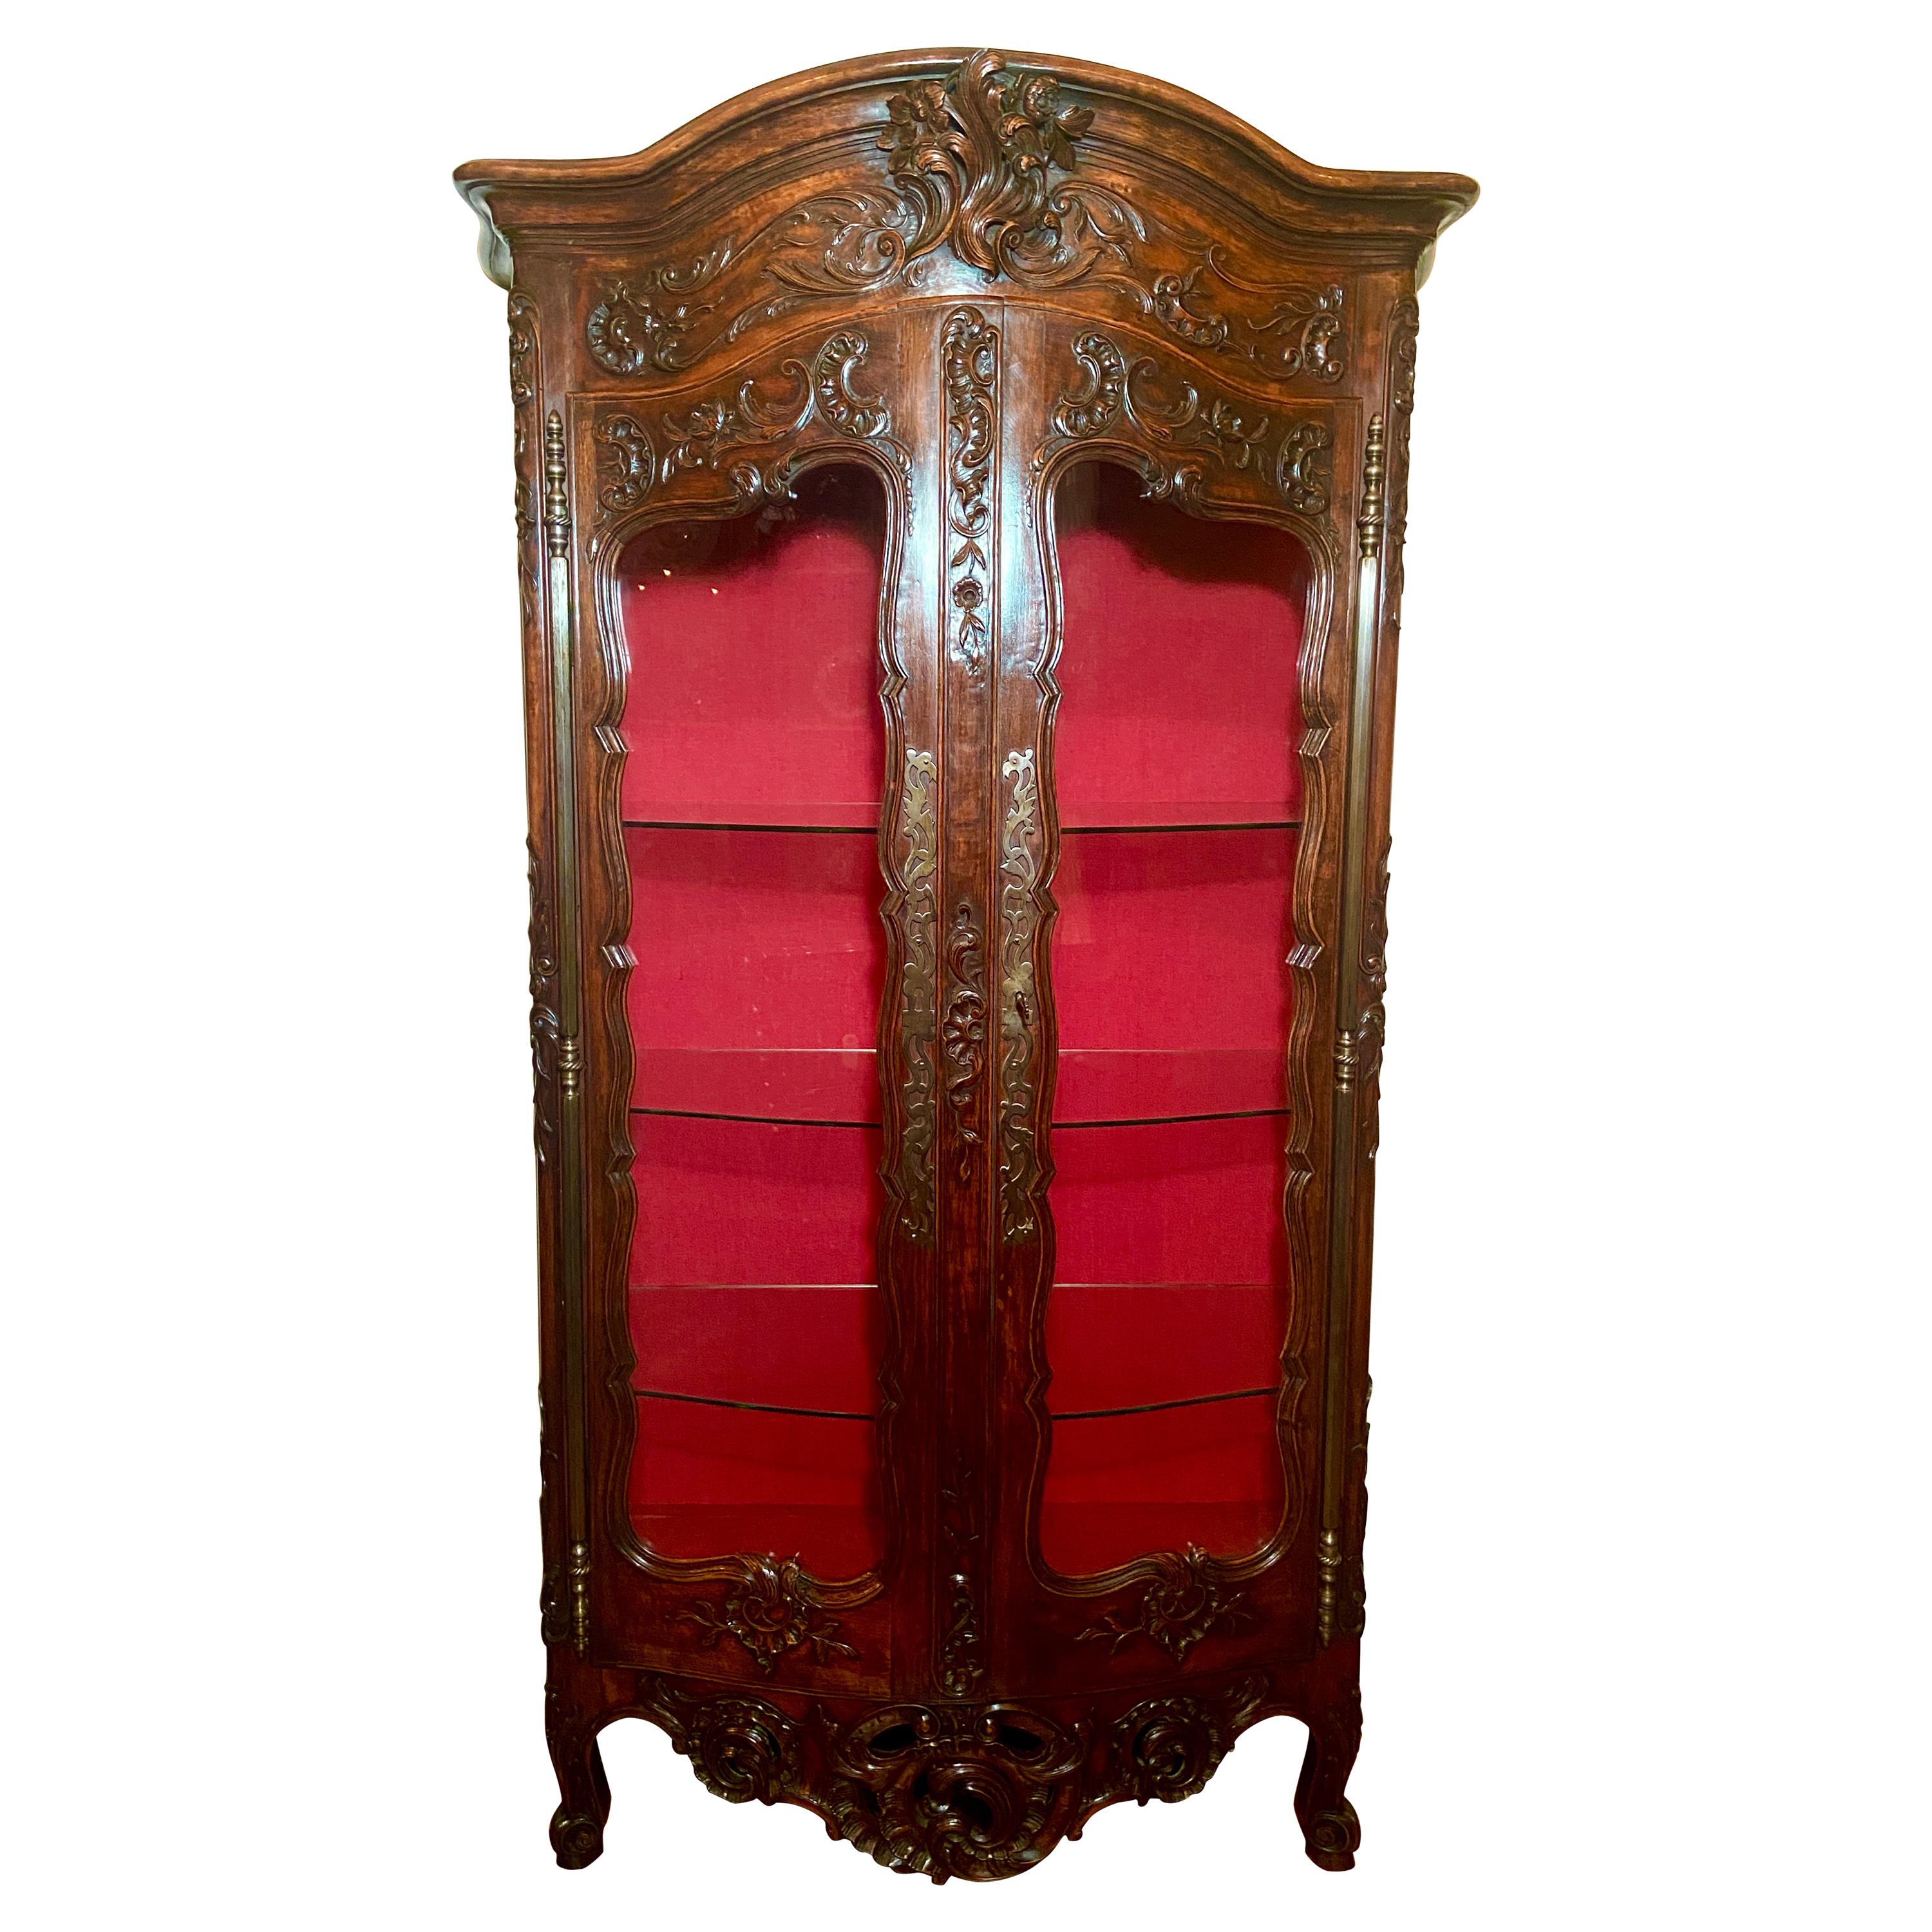 Antique French Provincial Carved Walnut Cabinet, Circa 1880